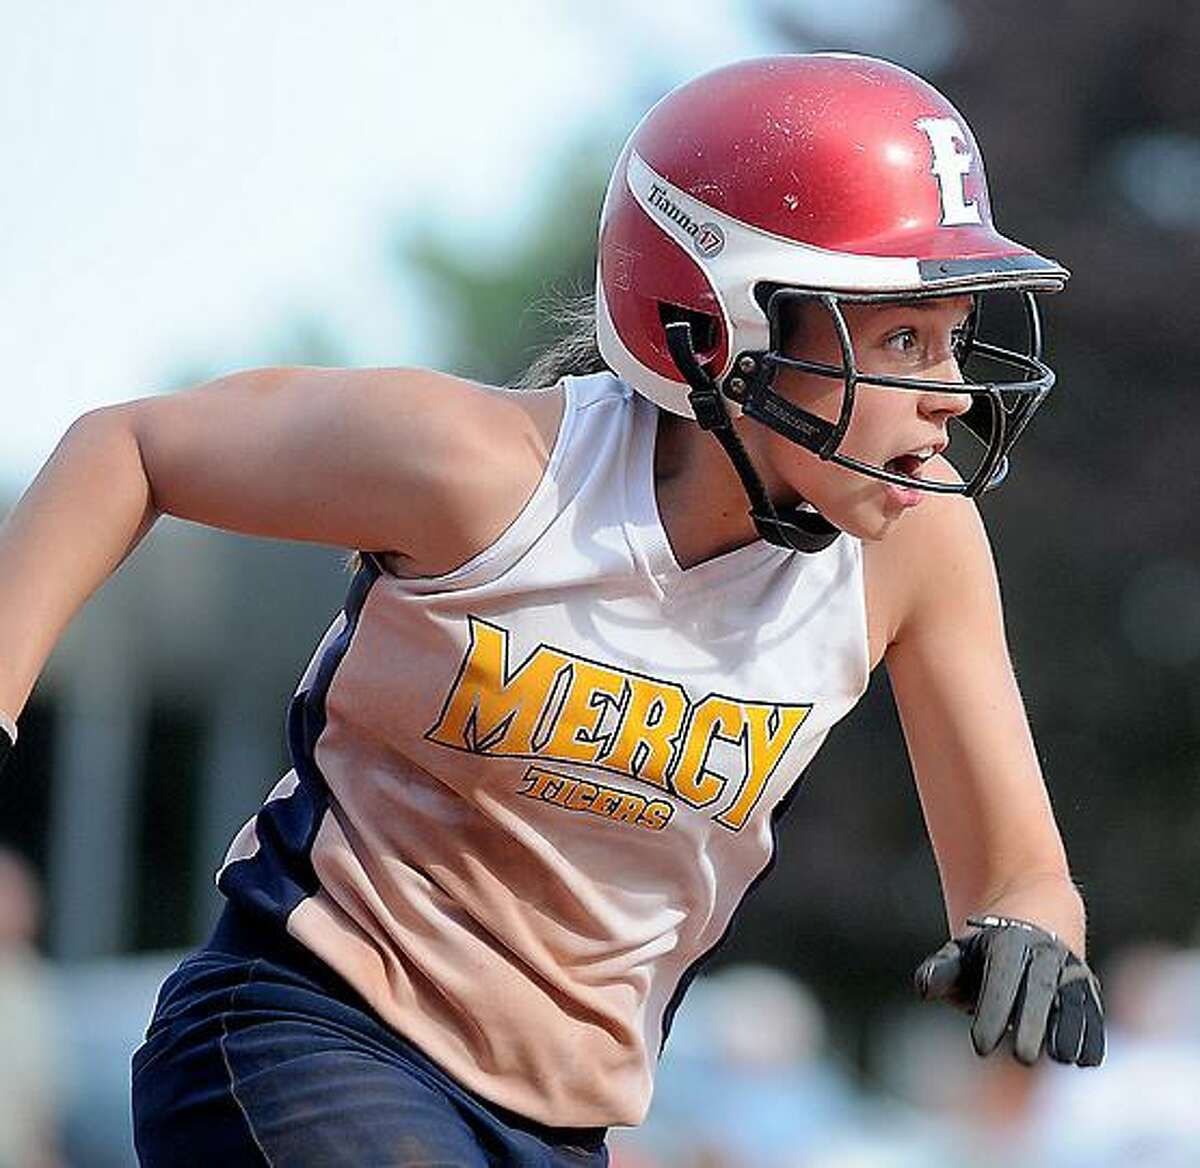 Catherine Avalone/Middletown Press It's upwards and onwards for Madison DeRita (pictured) and Mercy softball, which advanced to the Class LL state tournament semifinals with a nine-inning win against Hand Friday.